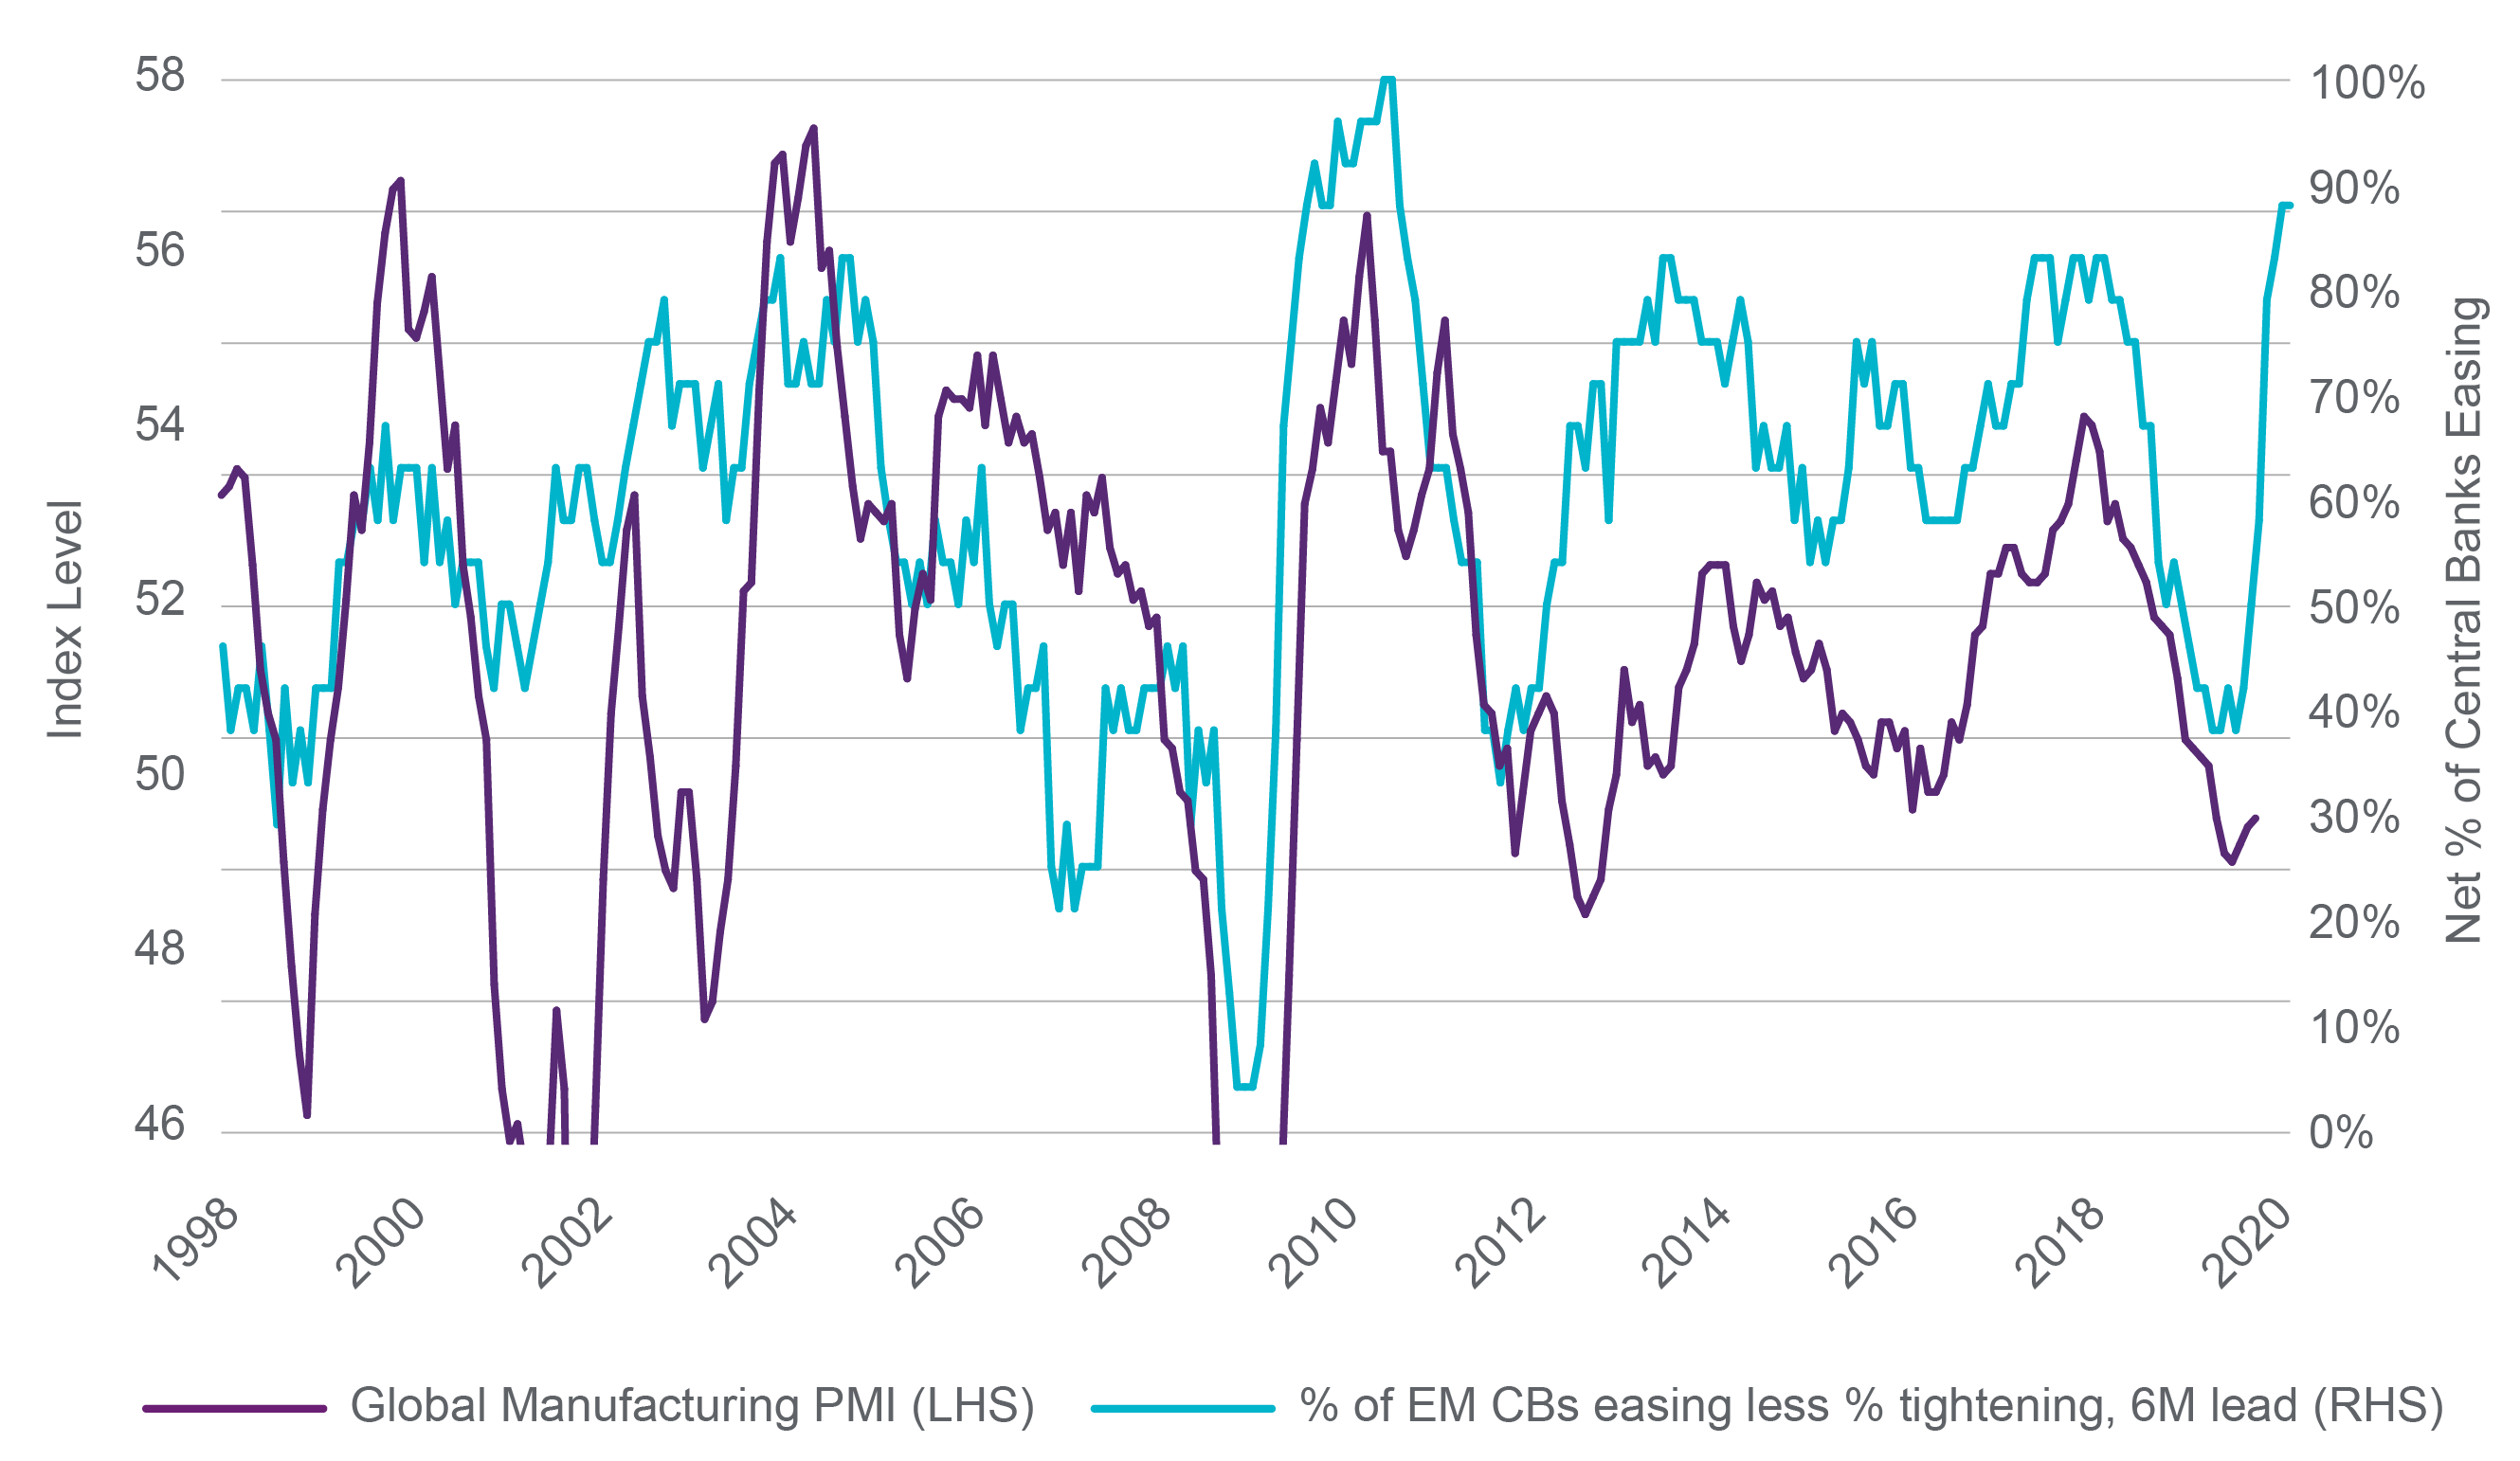 Manufacturing PMI vs EM Central Bank Policy (1/30/98 - 10/31/19)